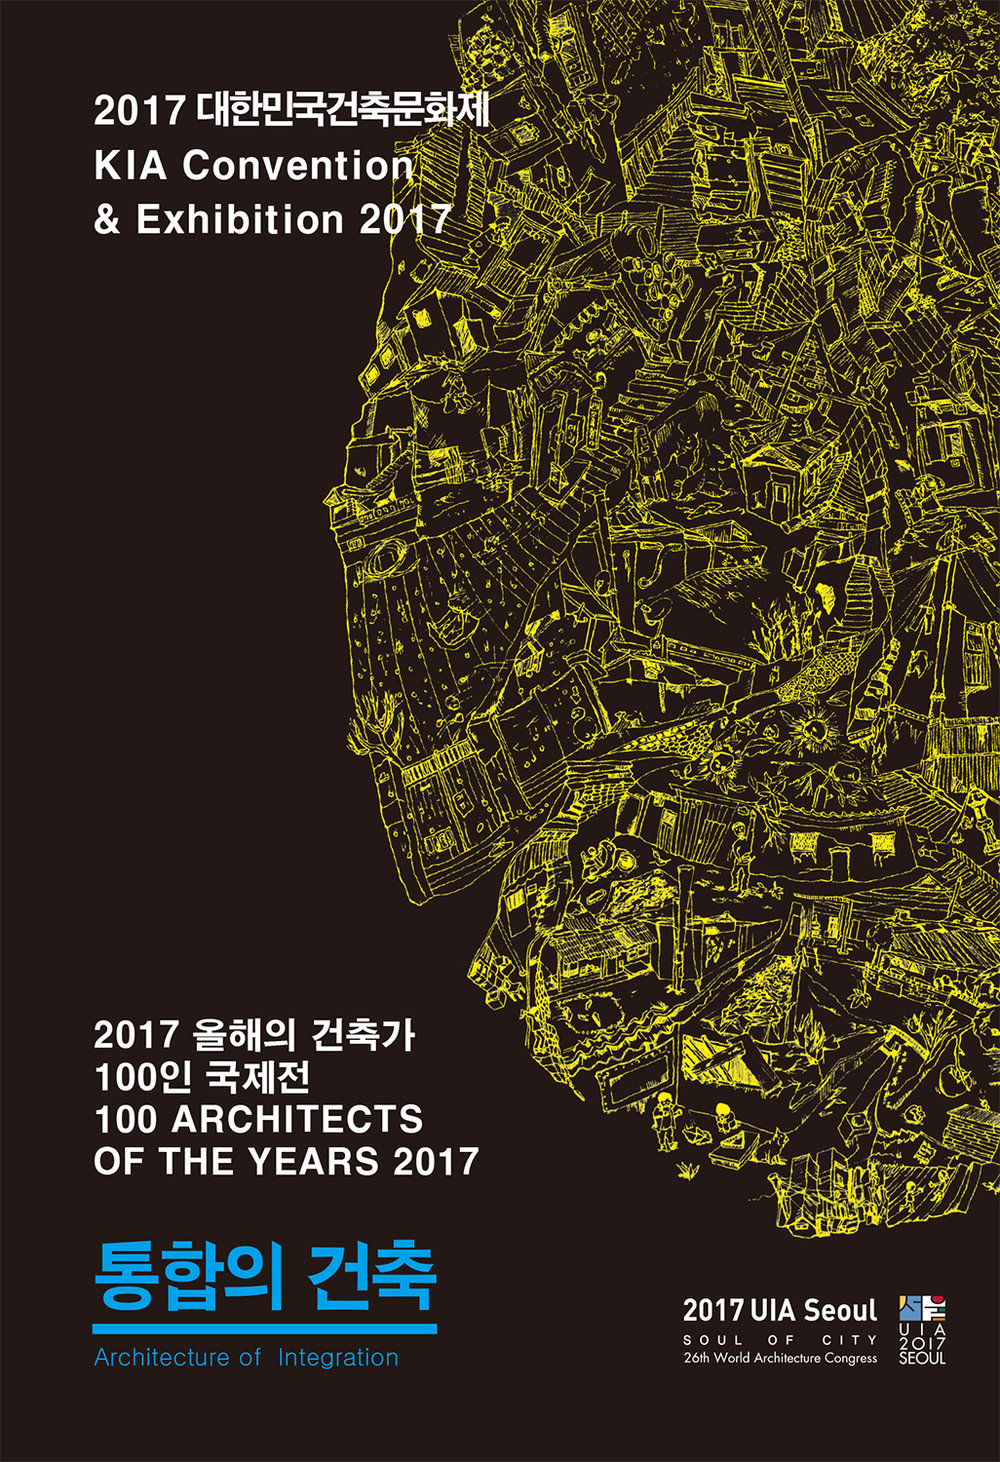 [Invitation]KIA Convention & 100 Architects ofthe year 2017_20170905-1_small.jpg